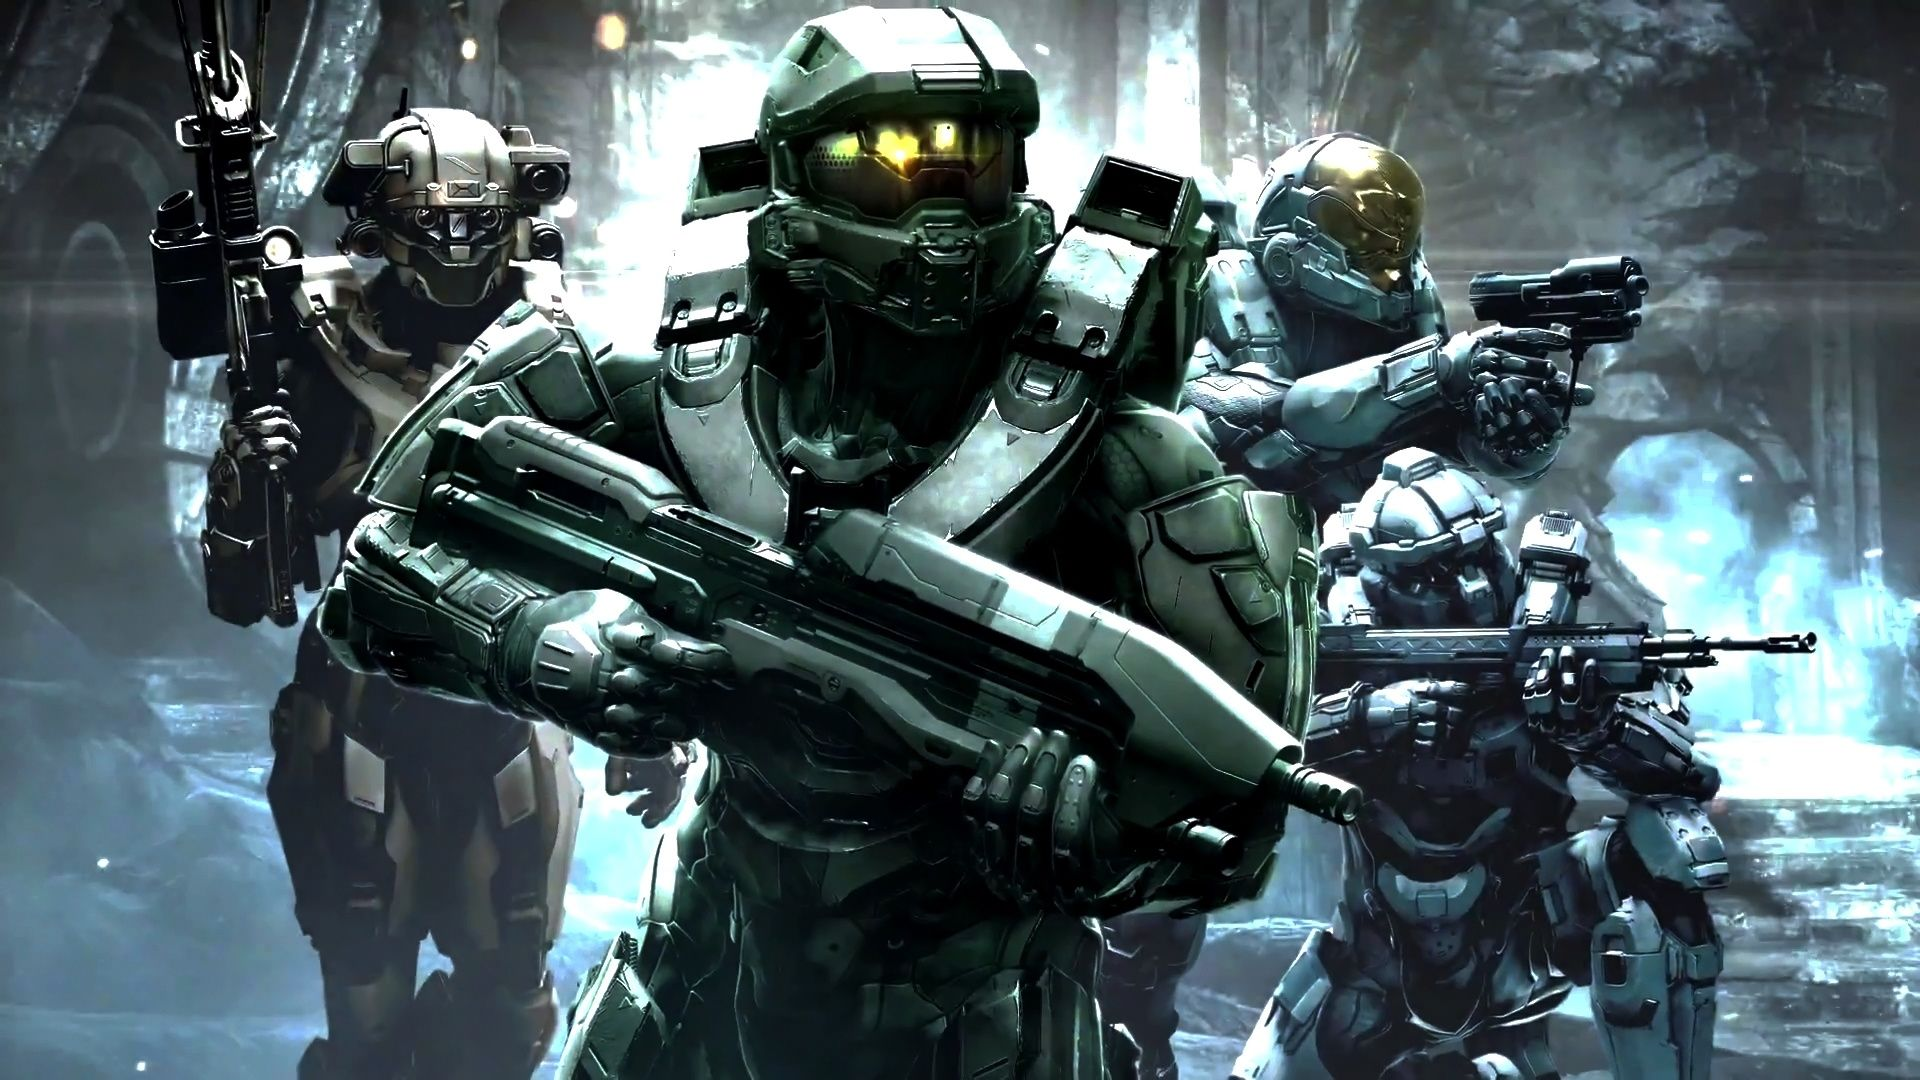 Halo 5 Hd Wallpapers Top Free Halo 5 Hd Backgrounds